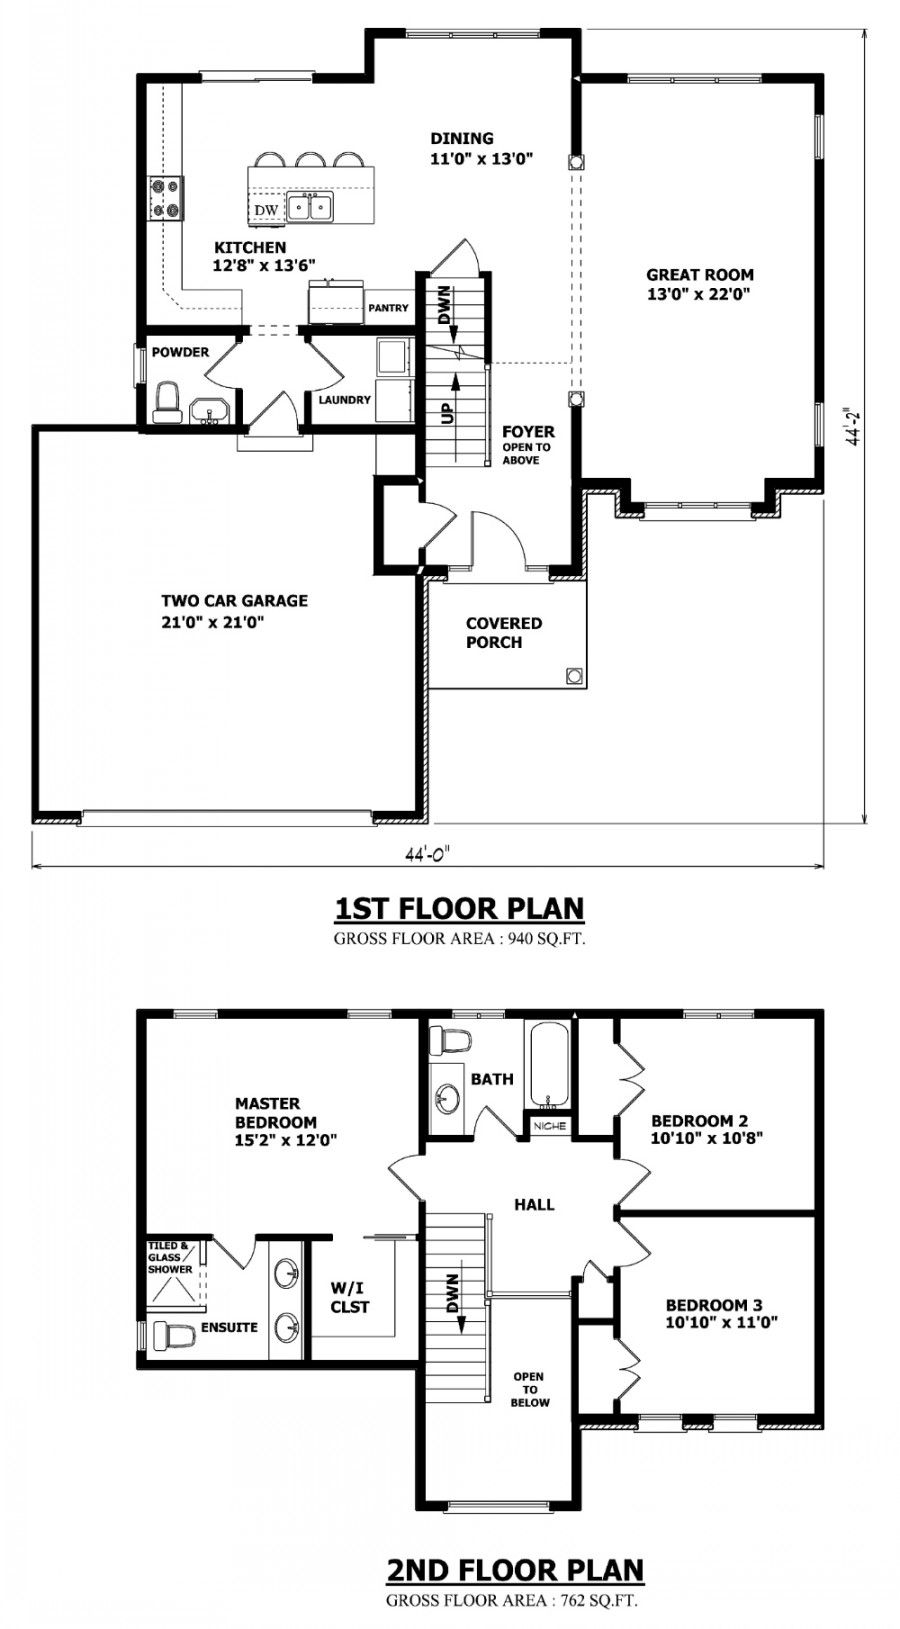 Home designs custom house plans stock house plans amp for Two story house layout